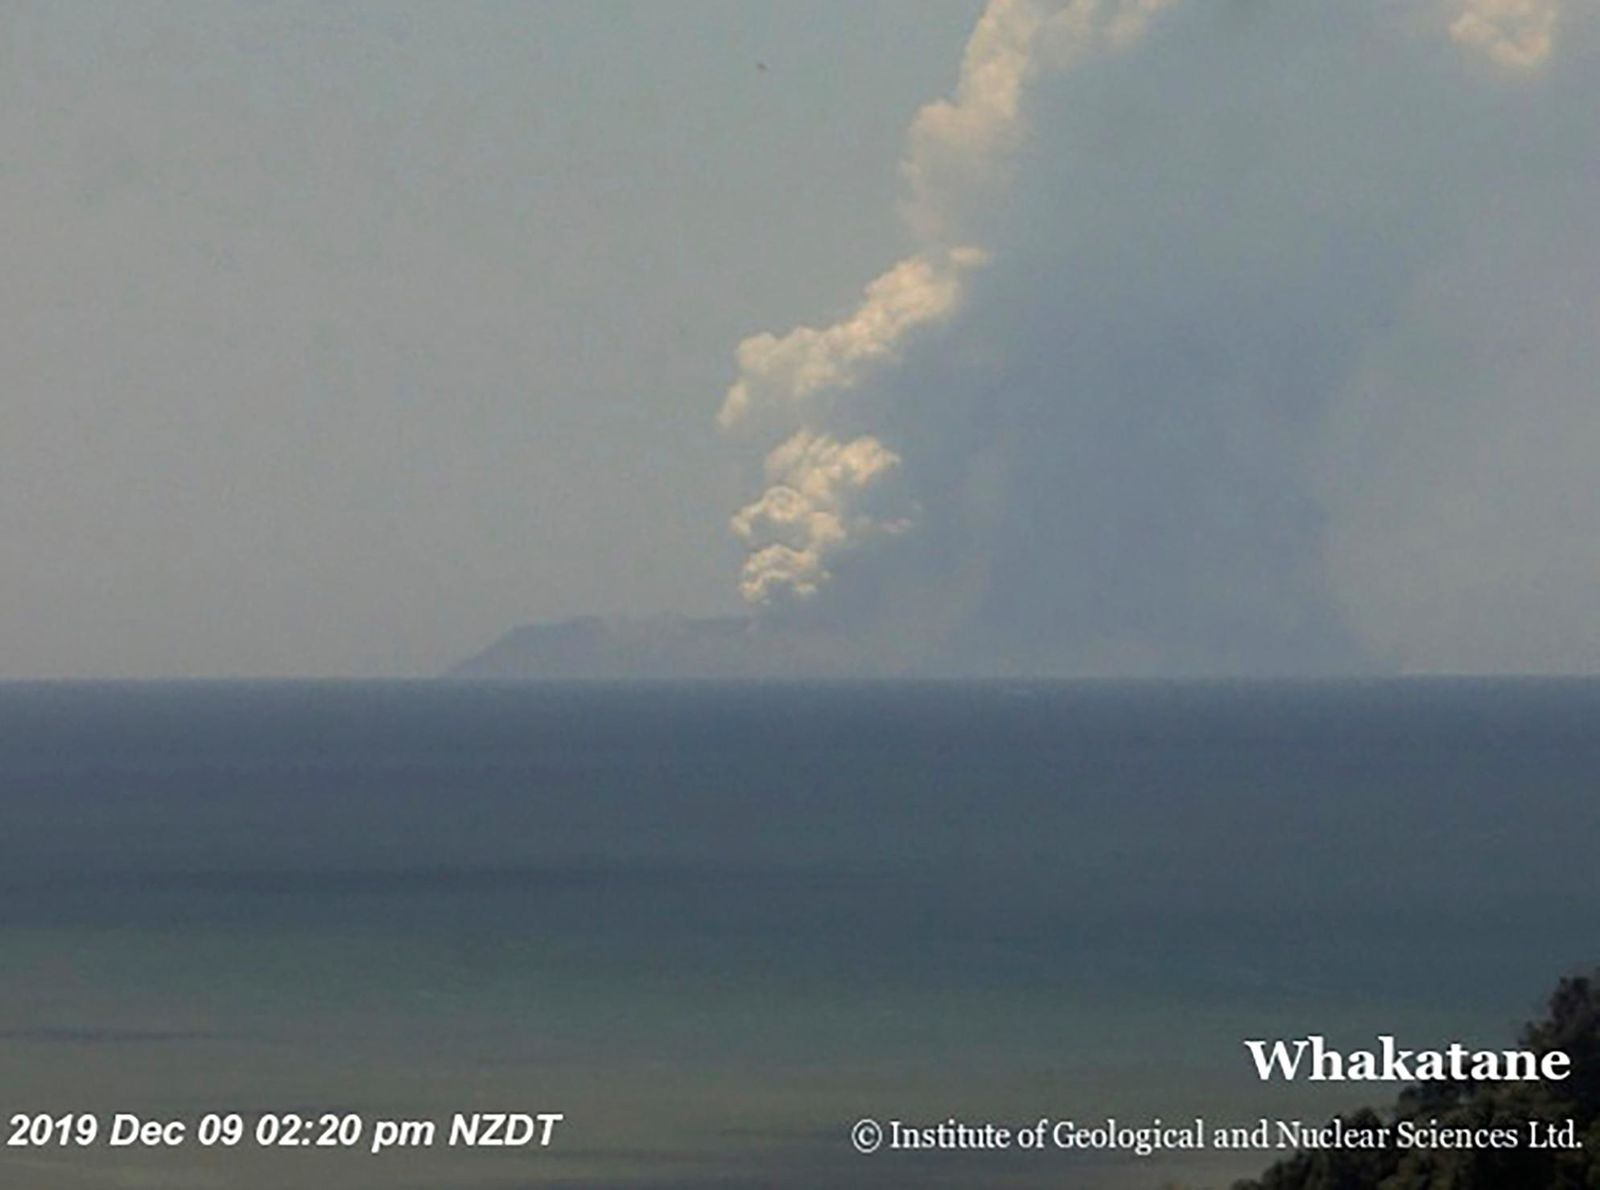 This image released by GNS Science, shows plumes of smoke from a volcanic eruption on White Island, seen from Whakatane, New Zealand Monday, Dec. 9, 2019.{ } (GNS Science via AP)